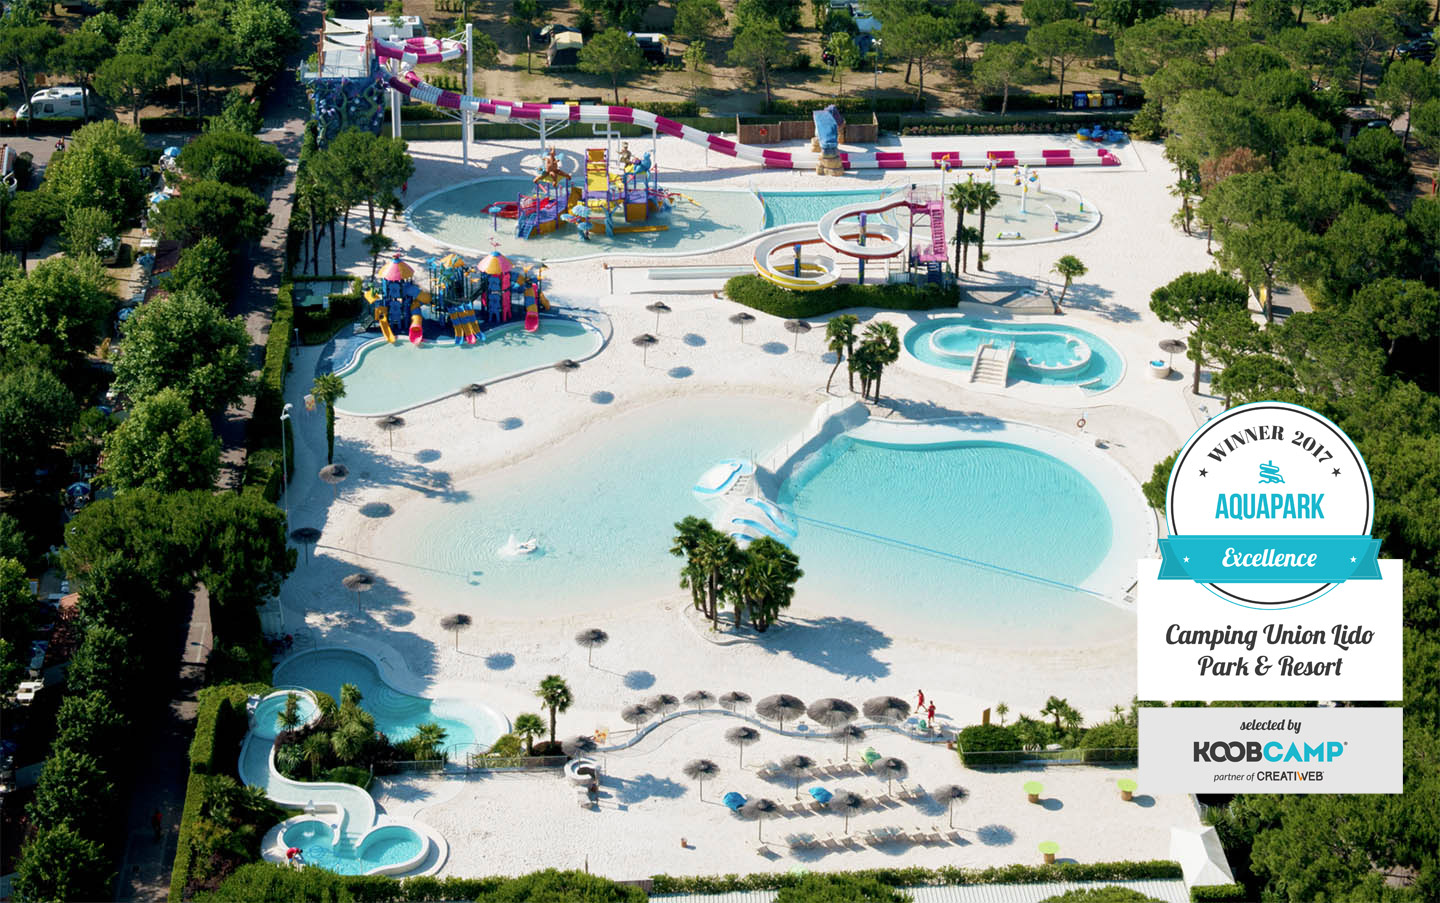 Il camping union lido park resort guida la top 10 campeggi e villaggi con aquapark travelnostop - Villaggi con piscine e scivoli ...